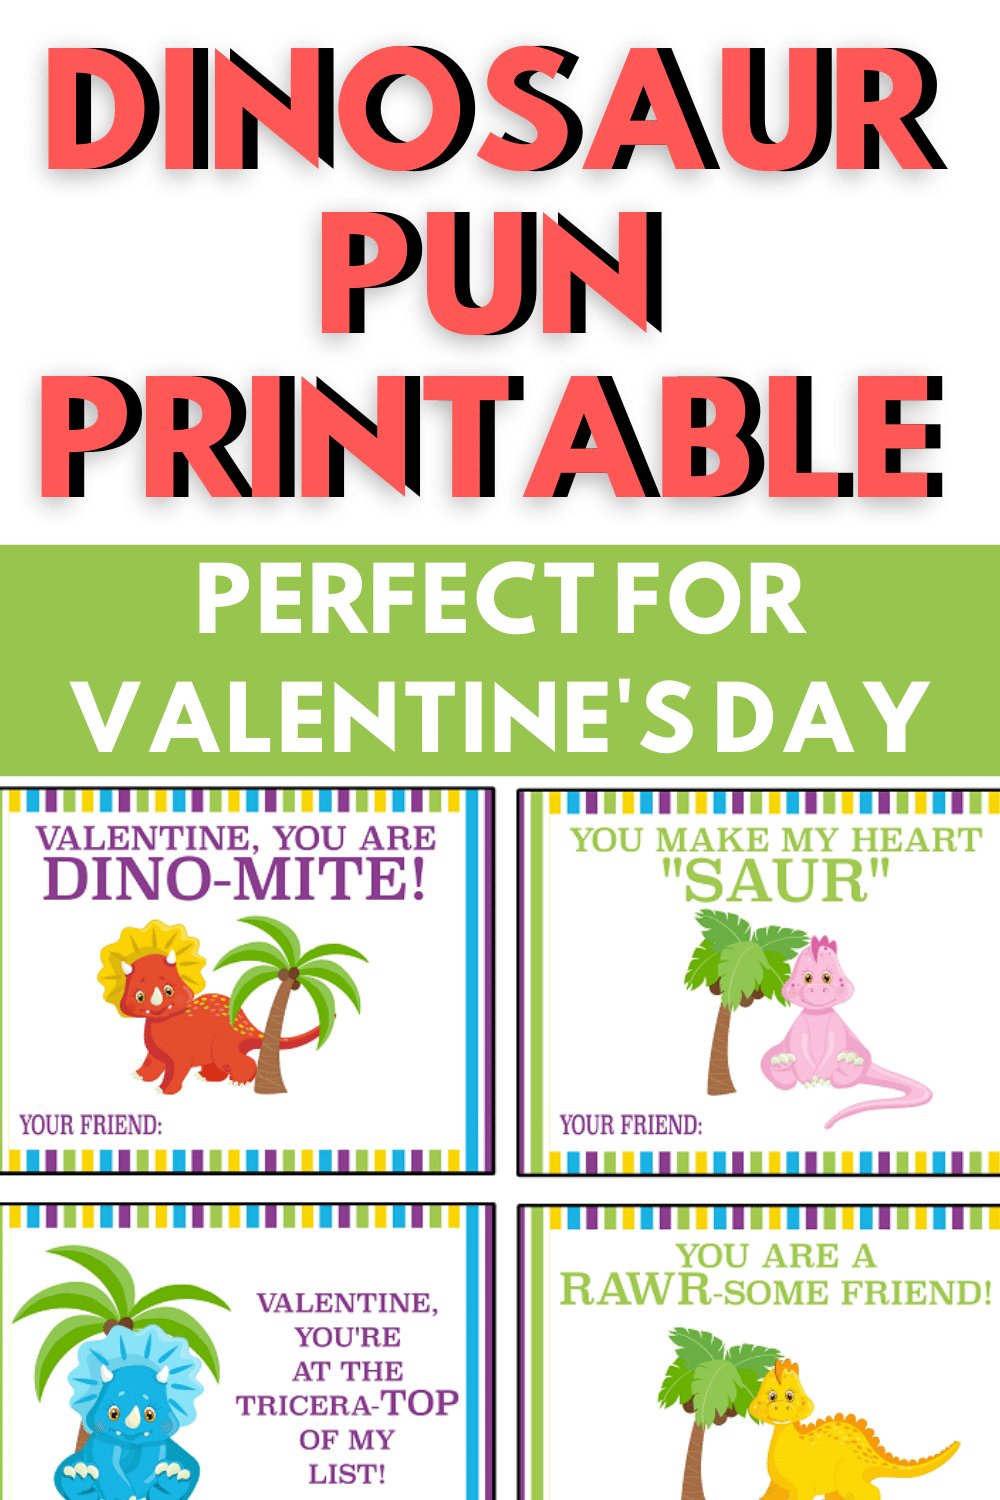 Who doesn't love dinosaur puns?! Give the kids a laugh with these Free Printable Dinosaur Valentine Cards, perfect for Valentine's Day! #valentinesday #valentinecards #dinosaur #puns #freeprintable via @wondermomwannab